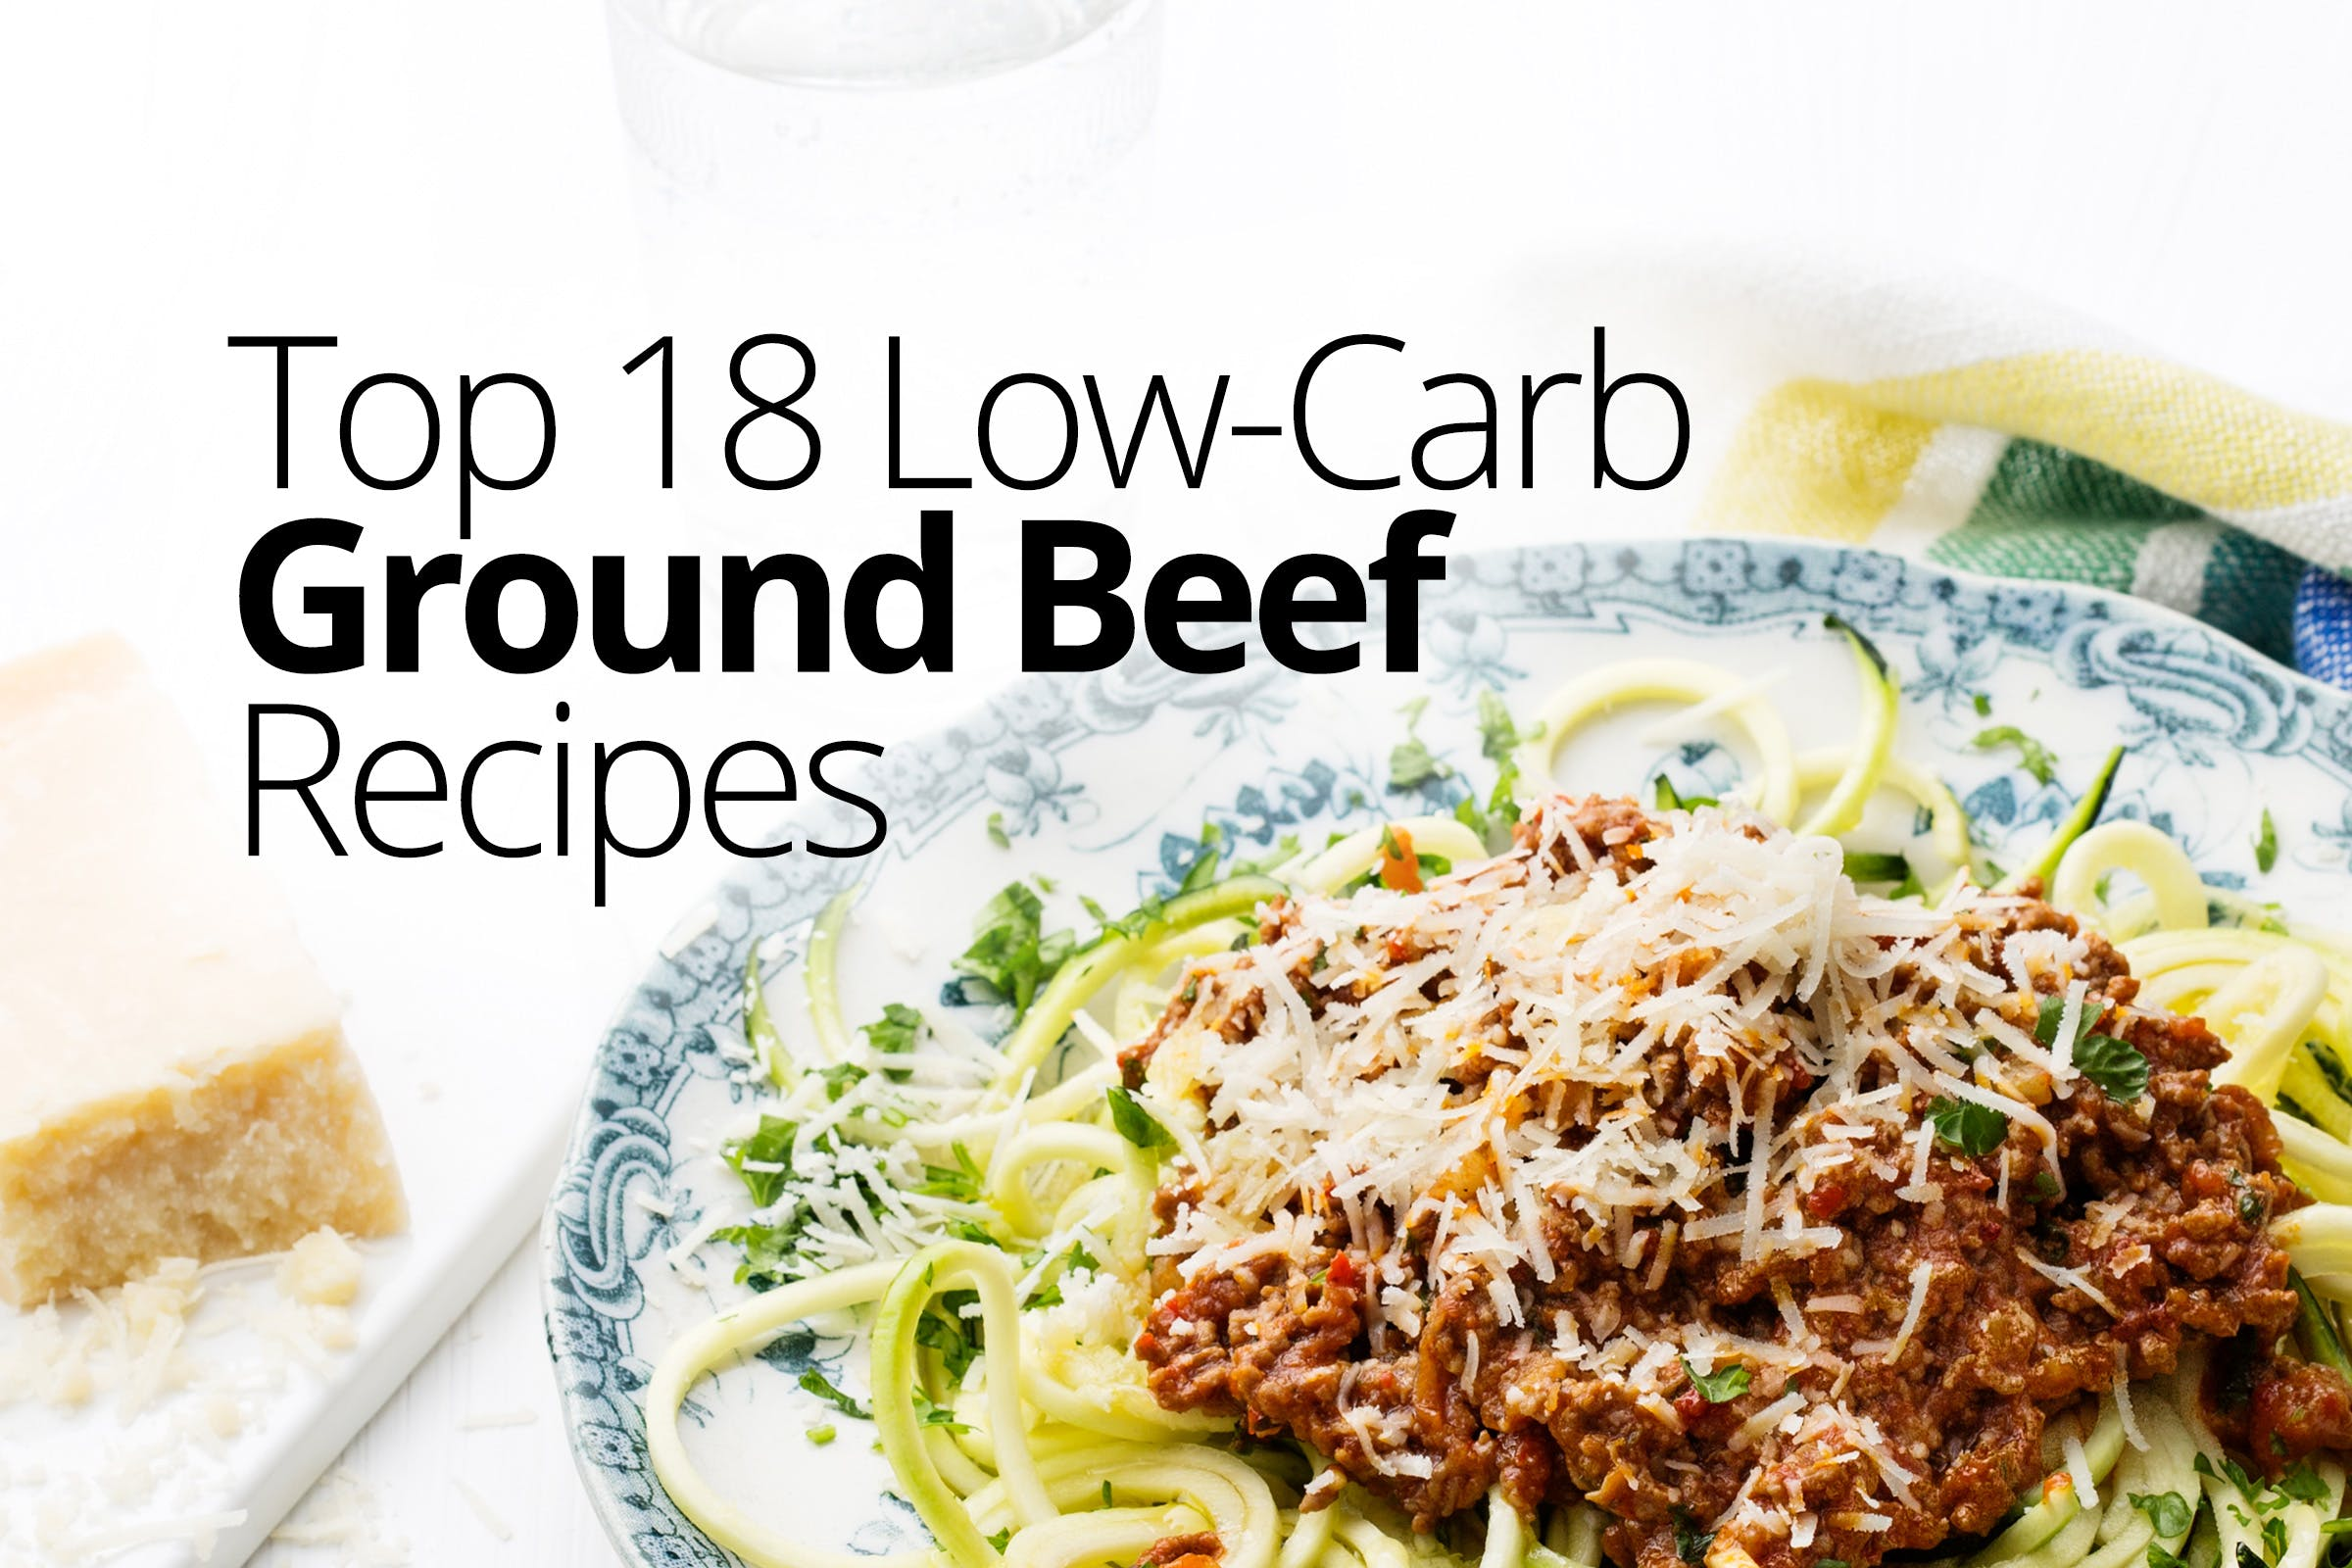 Top 18 Low-Carb <strong>Ground Beef</strong> Recipes